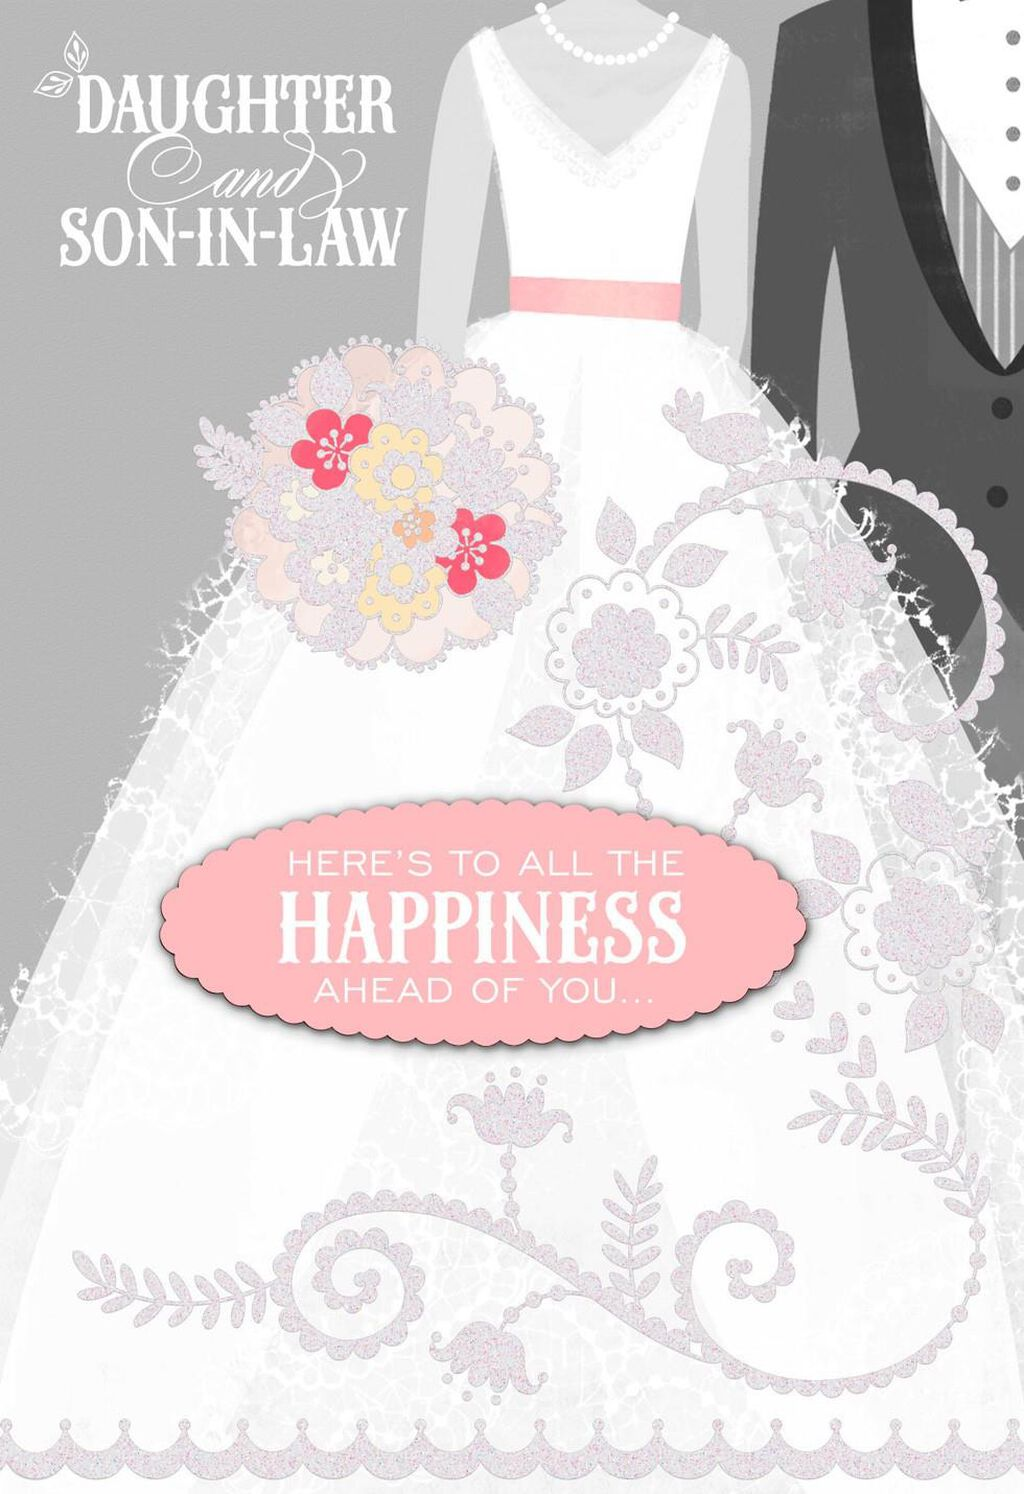 Happiness Ahead Daughter and Son-in-Law Wedding Card - Greeting ...